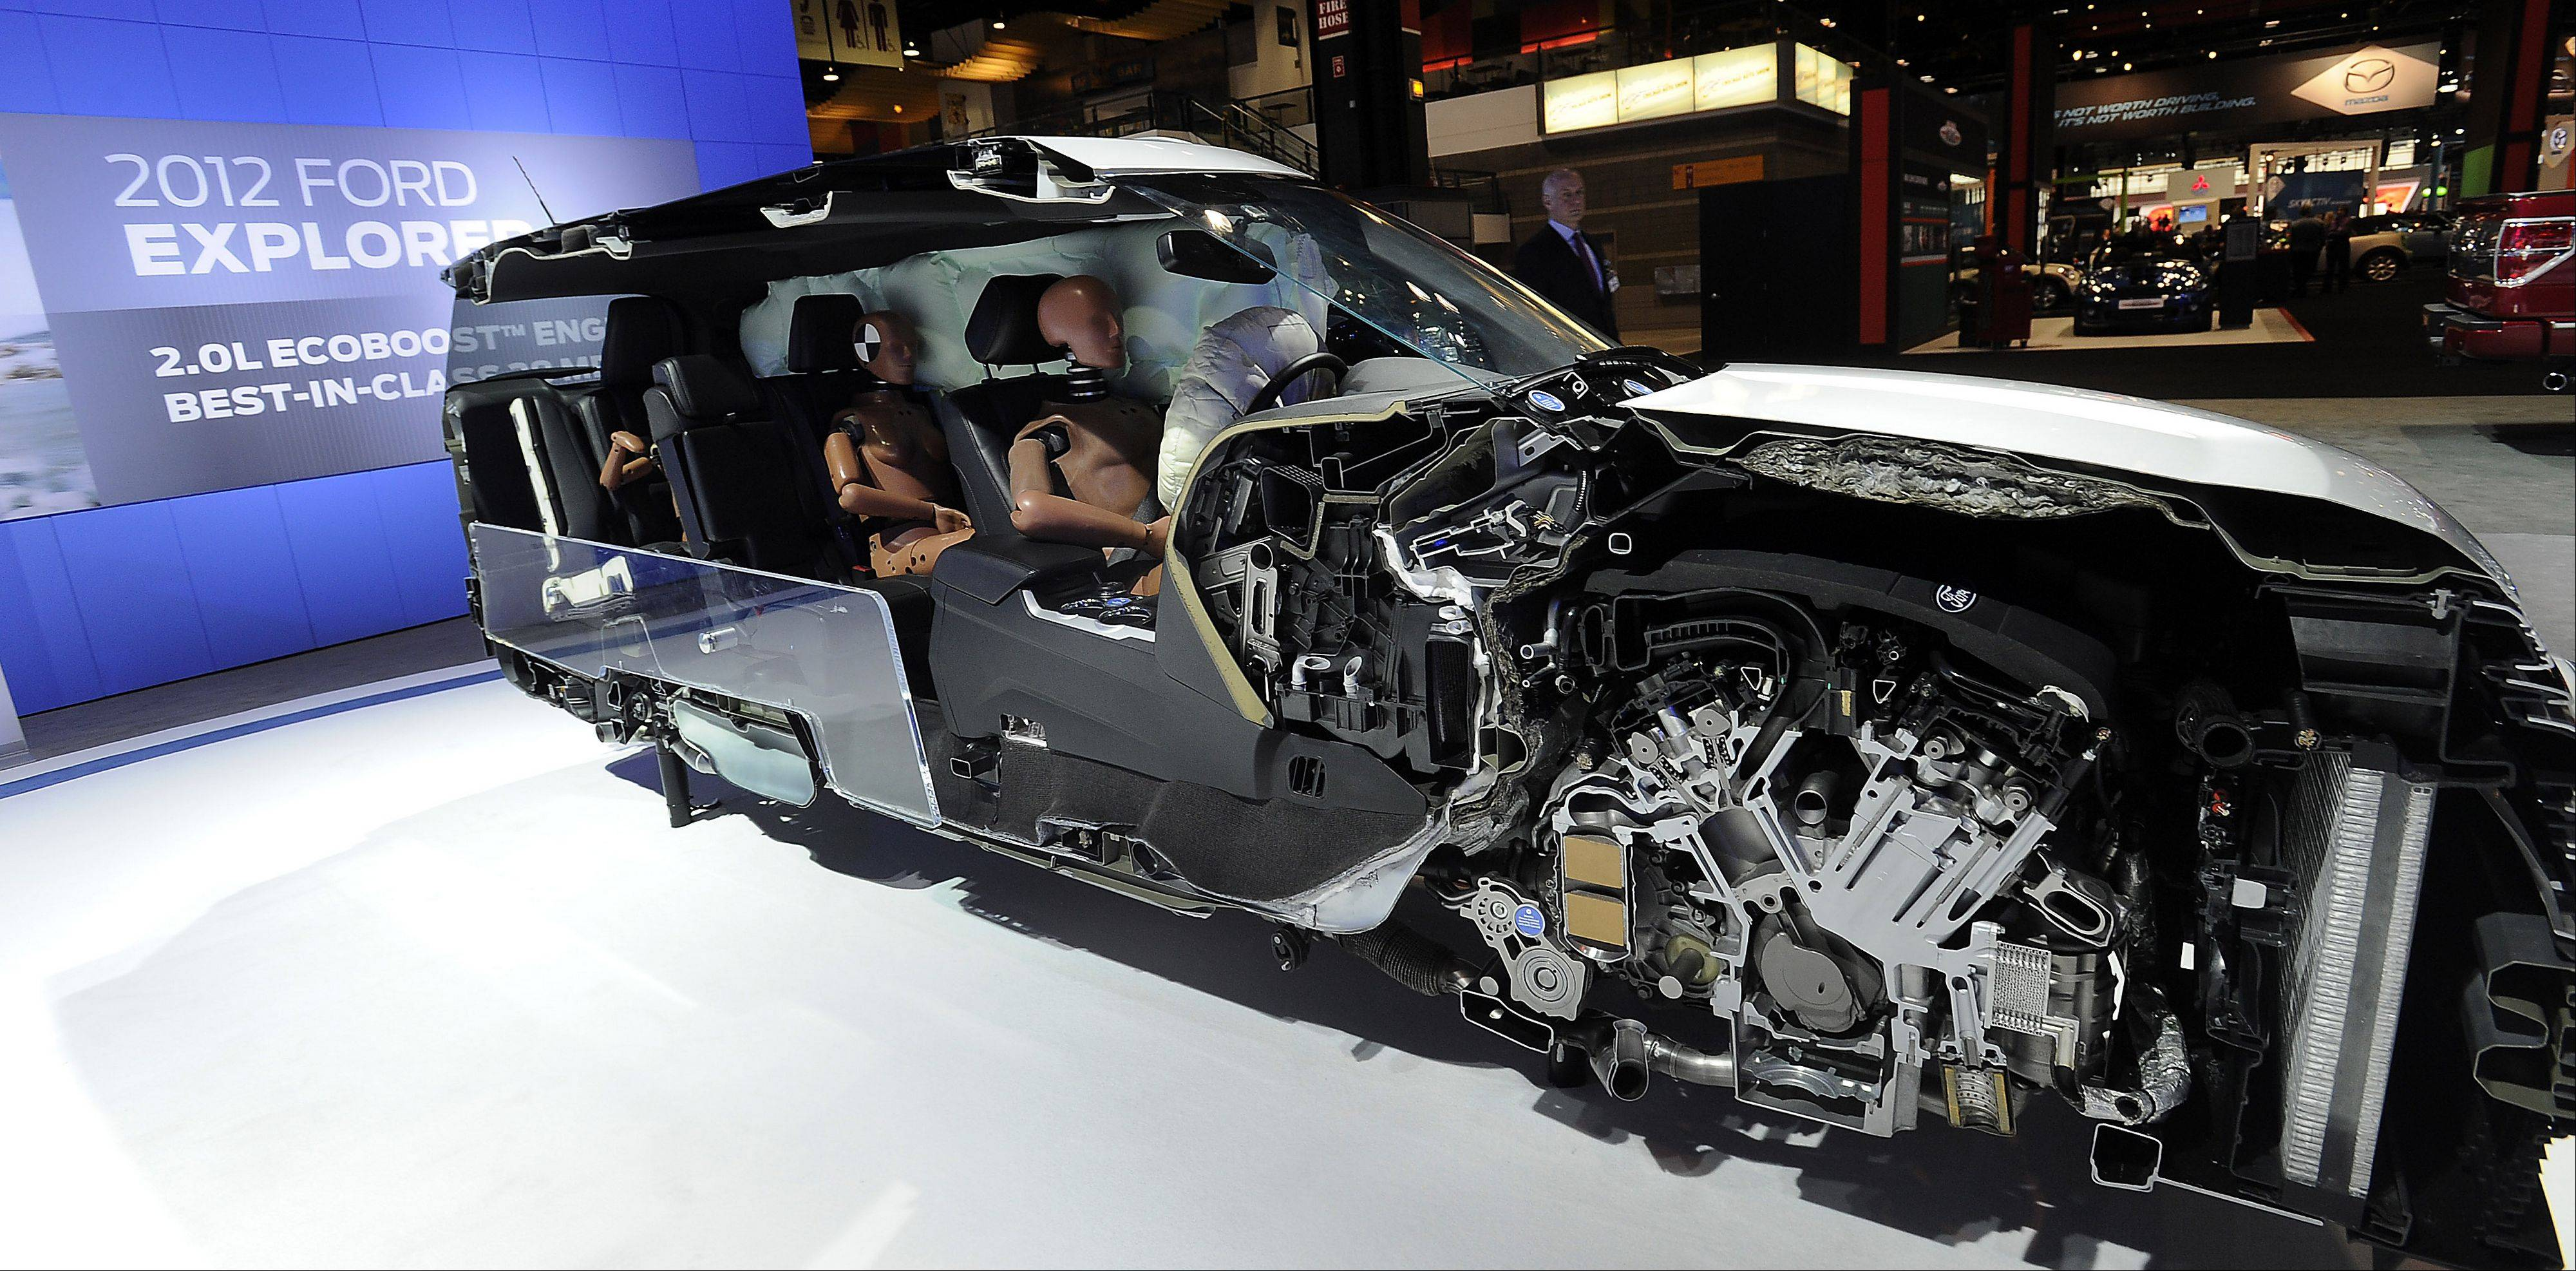 The 2012 Ford Explorer cut-away reveals how airbags are used.